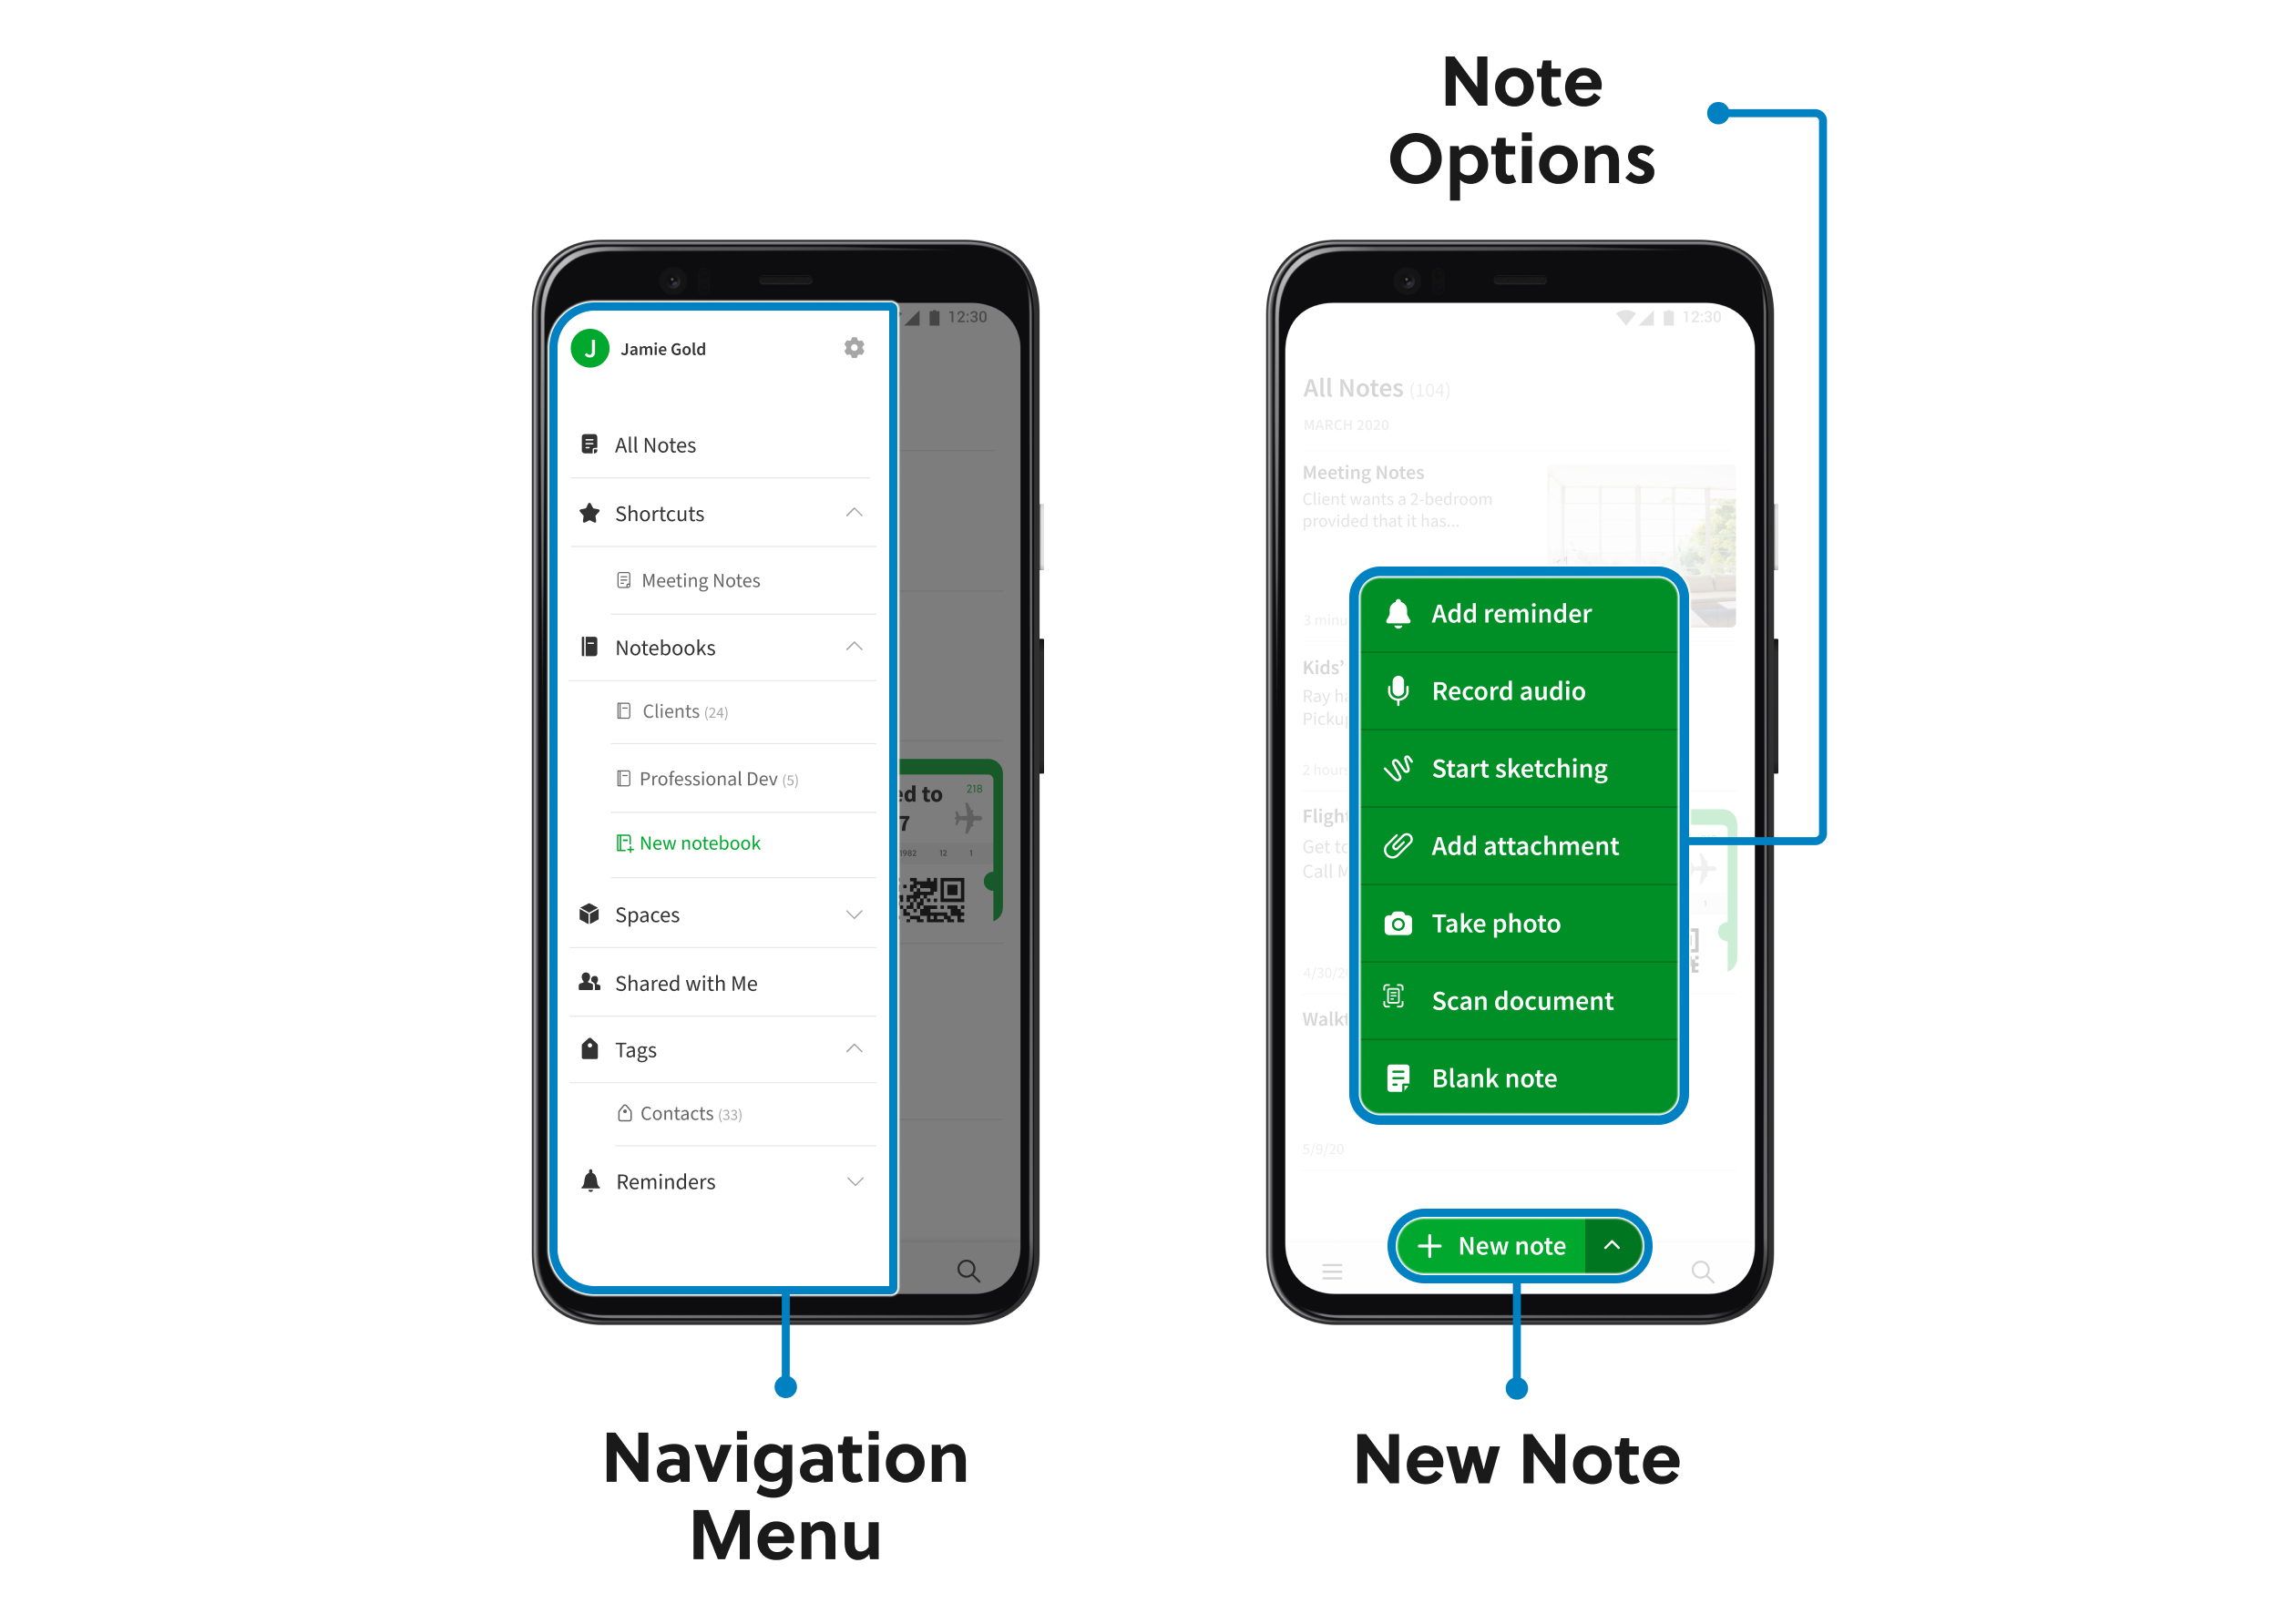 Image de l'interface d'Evernote pour Android